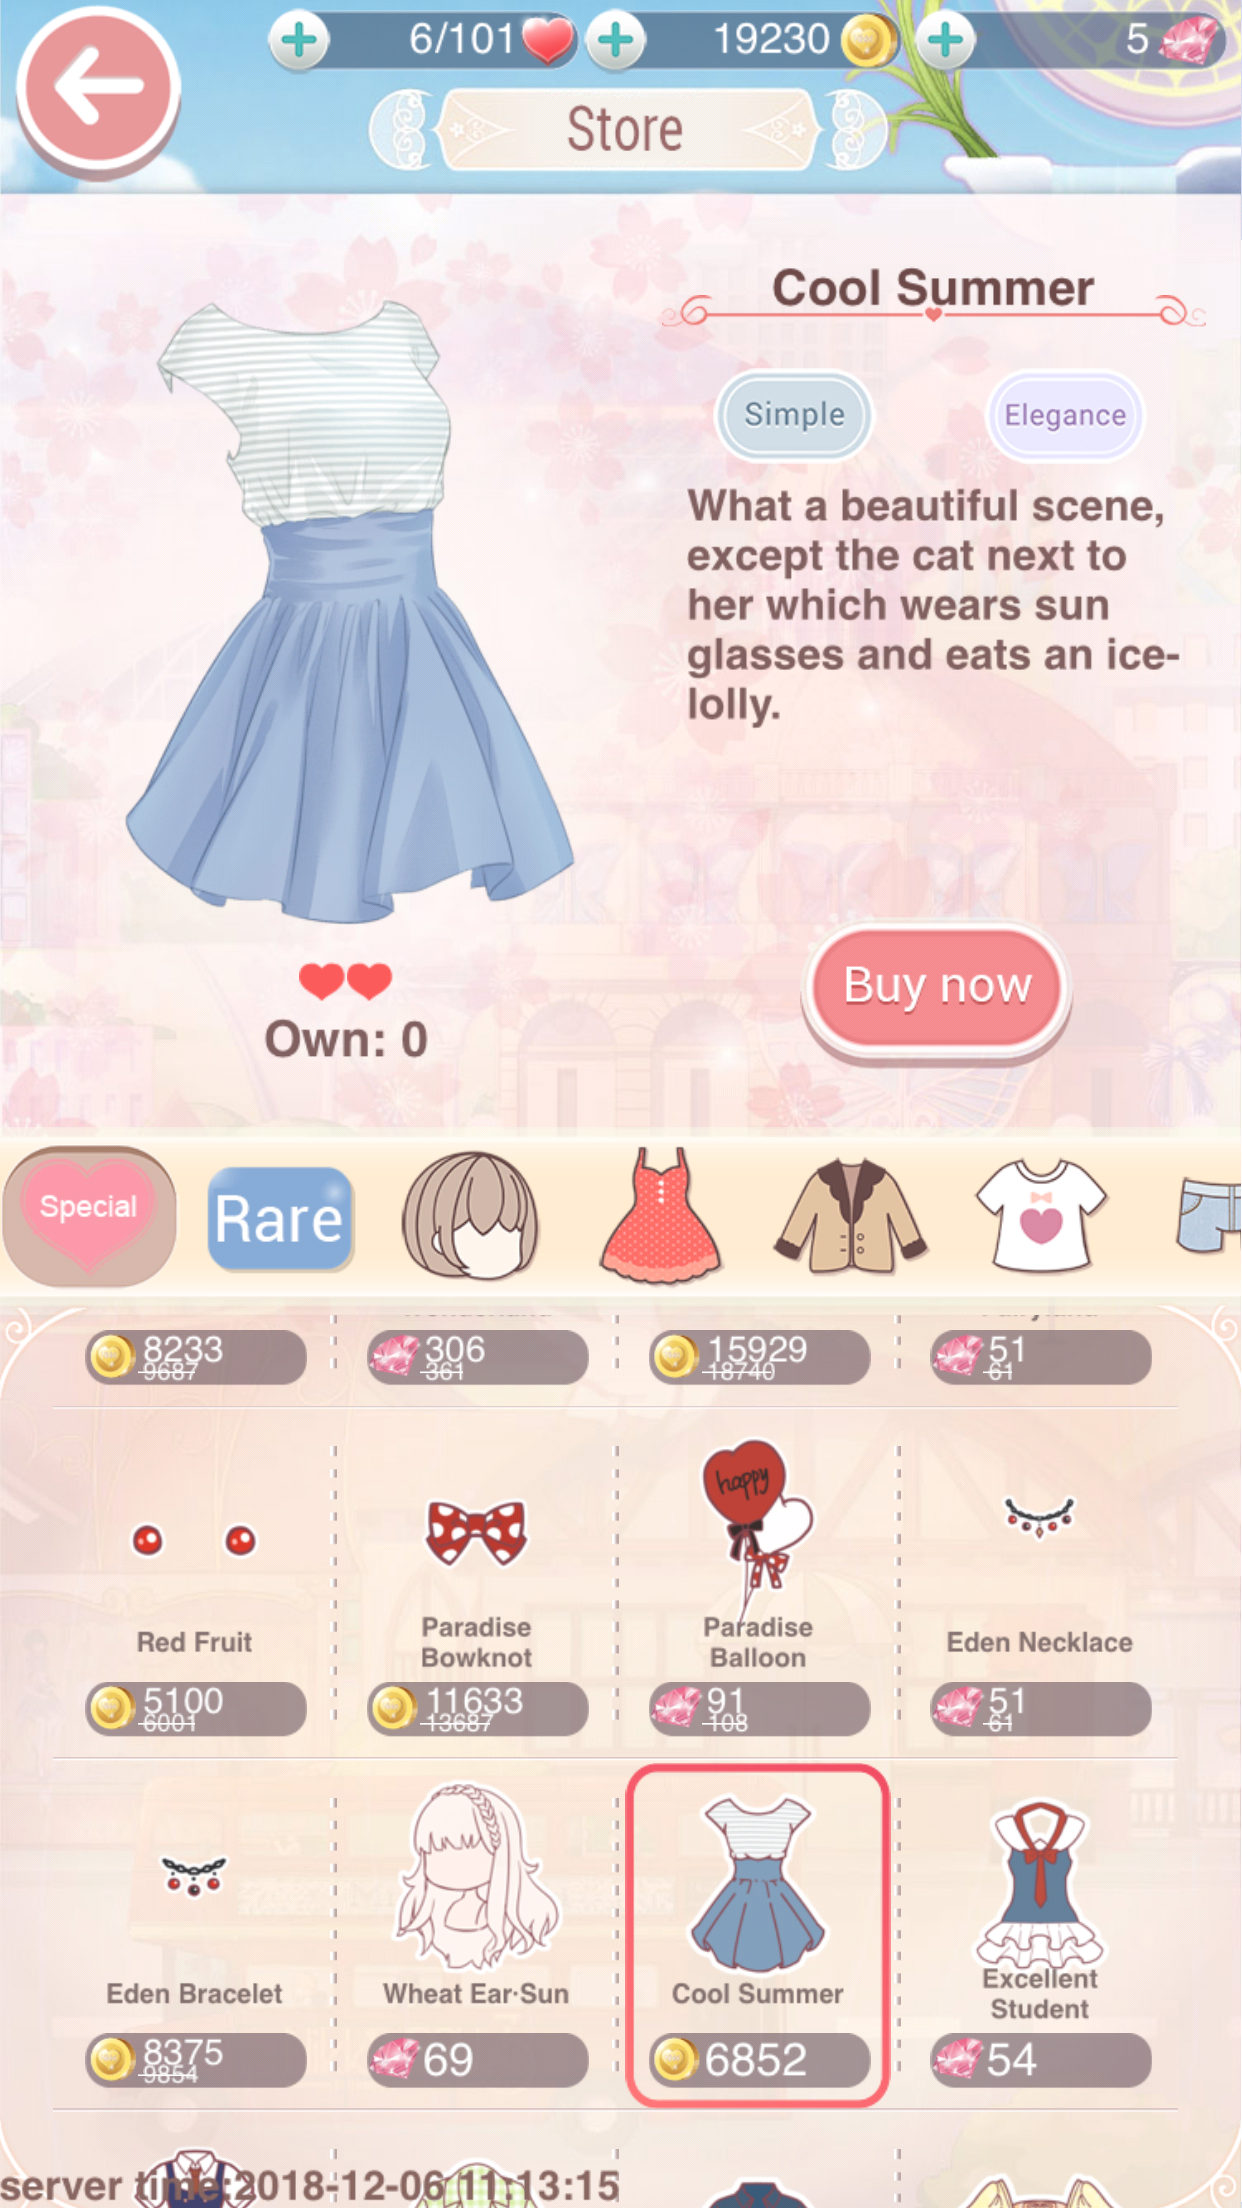 A dress, purchasable in the game's Store.